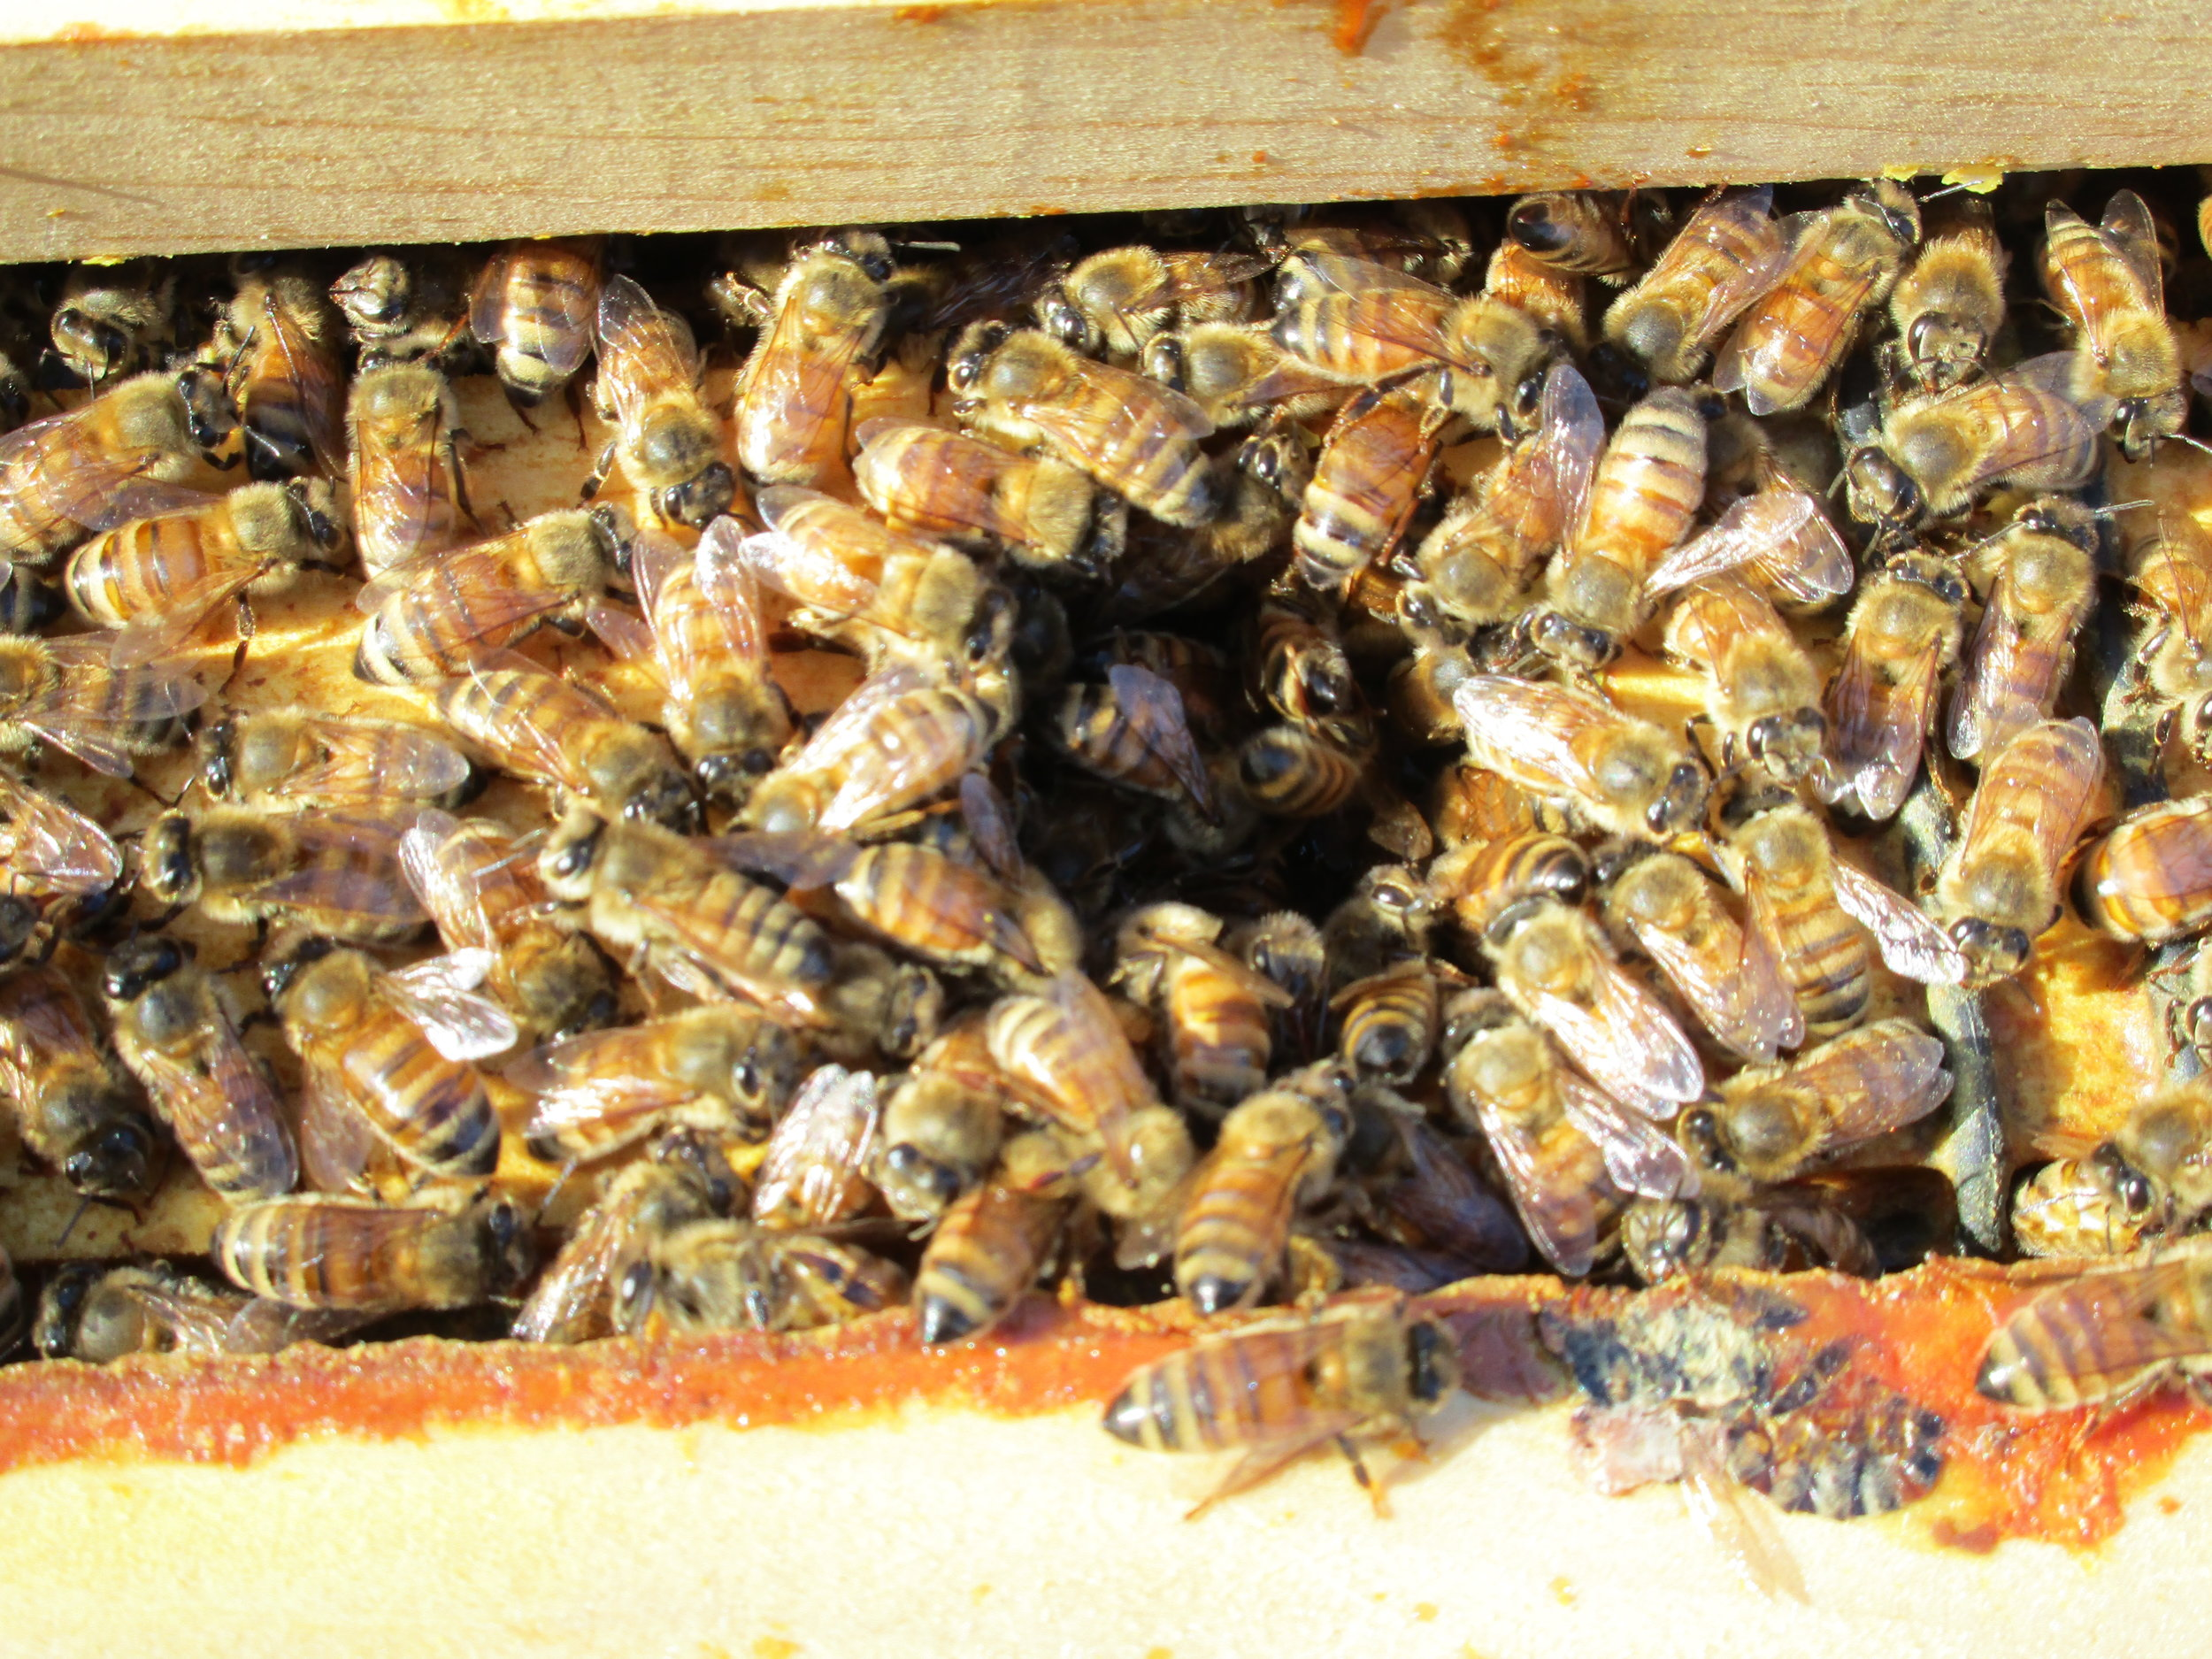 Bees thriving in one of the hives after a long winter - 2016